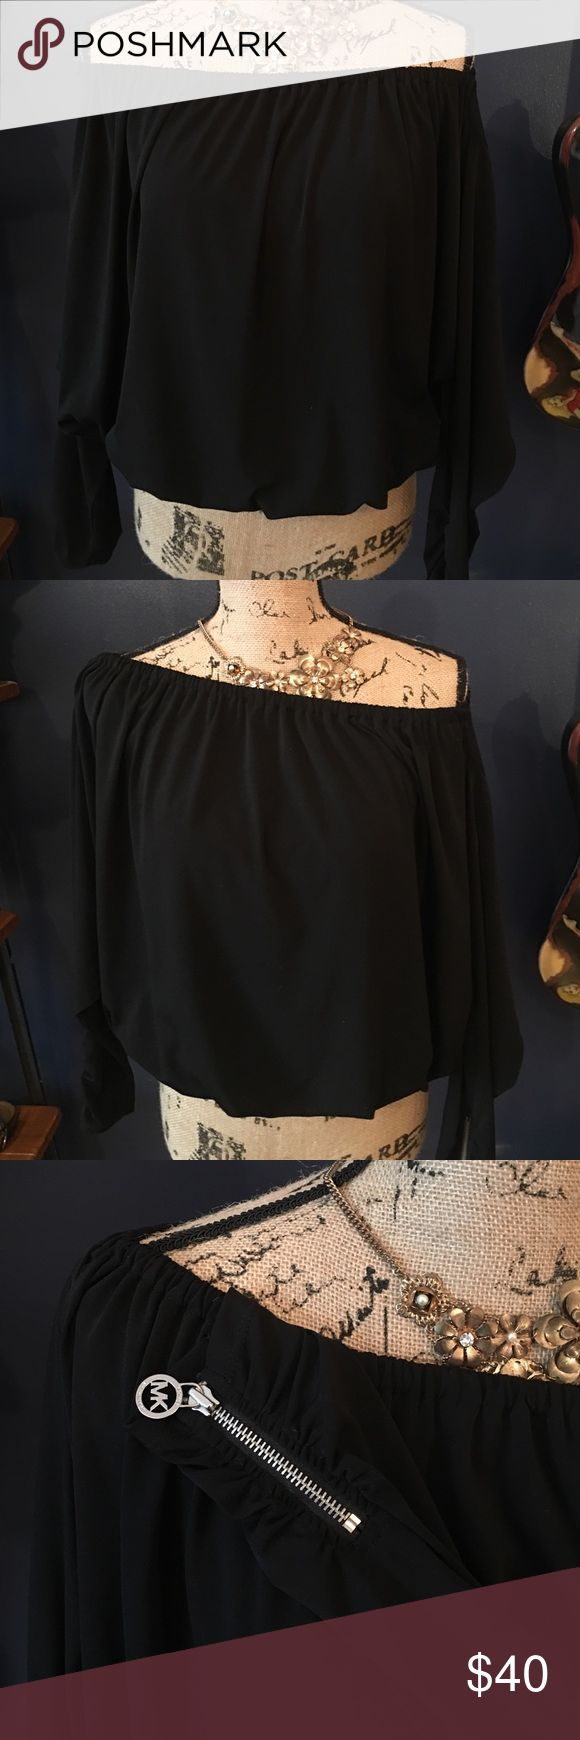 Michael Kors slouchy banded off shoulders blouse Michael Kors slouchy banded off shoulders blouse polyester and spandex. Super cute worn off one shoulder or both. Zipper cuff with silver MK zipper pulls. KORS Michael Kors Tops Blouses